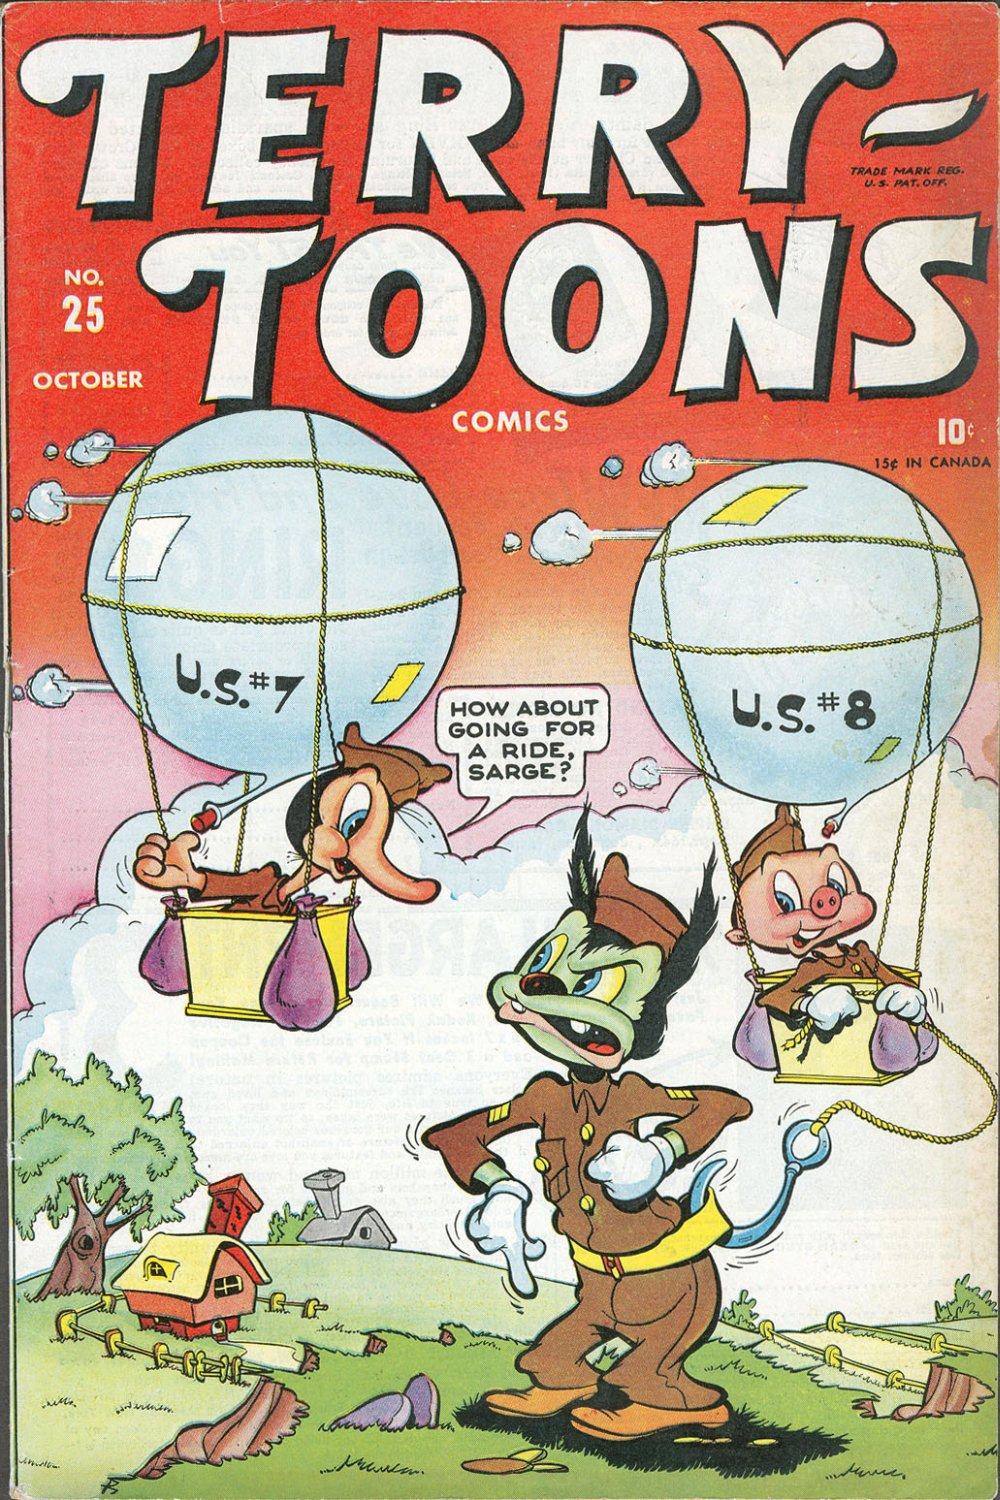 Terry-Toons Comics [UNKNOWN] V1 0025.jpg